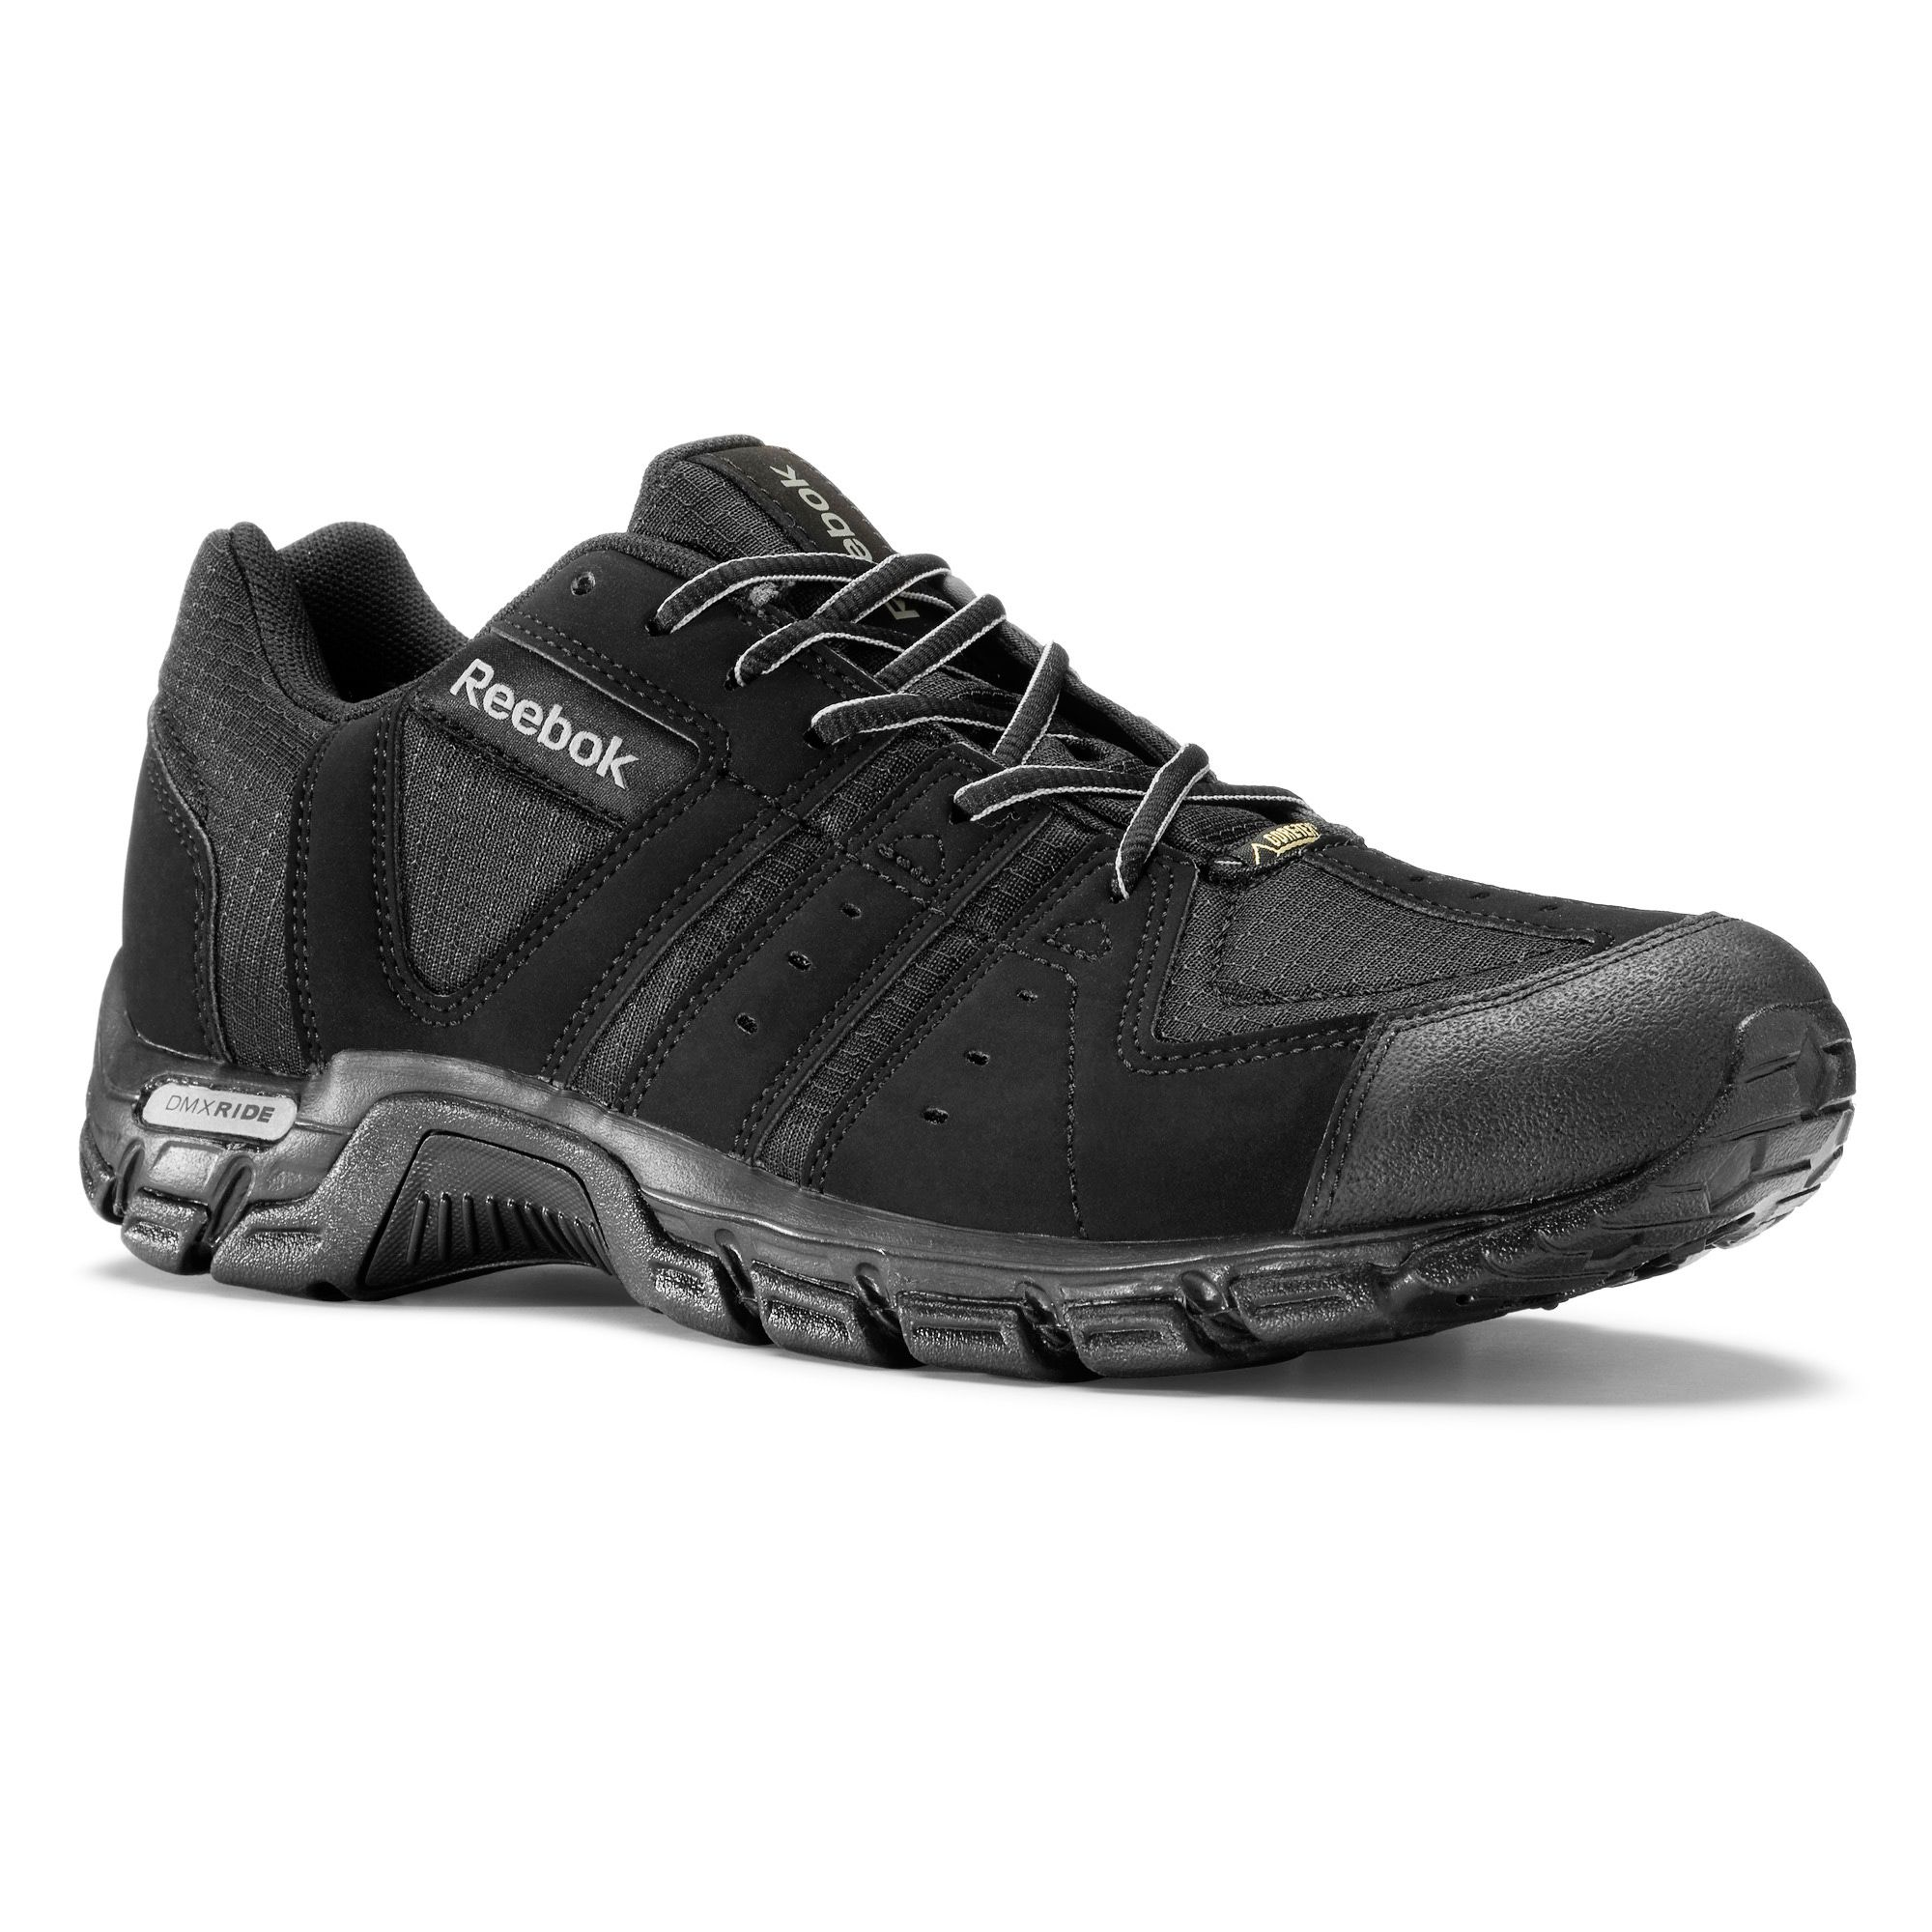 sports reebok shoes running collection latest footwear